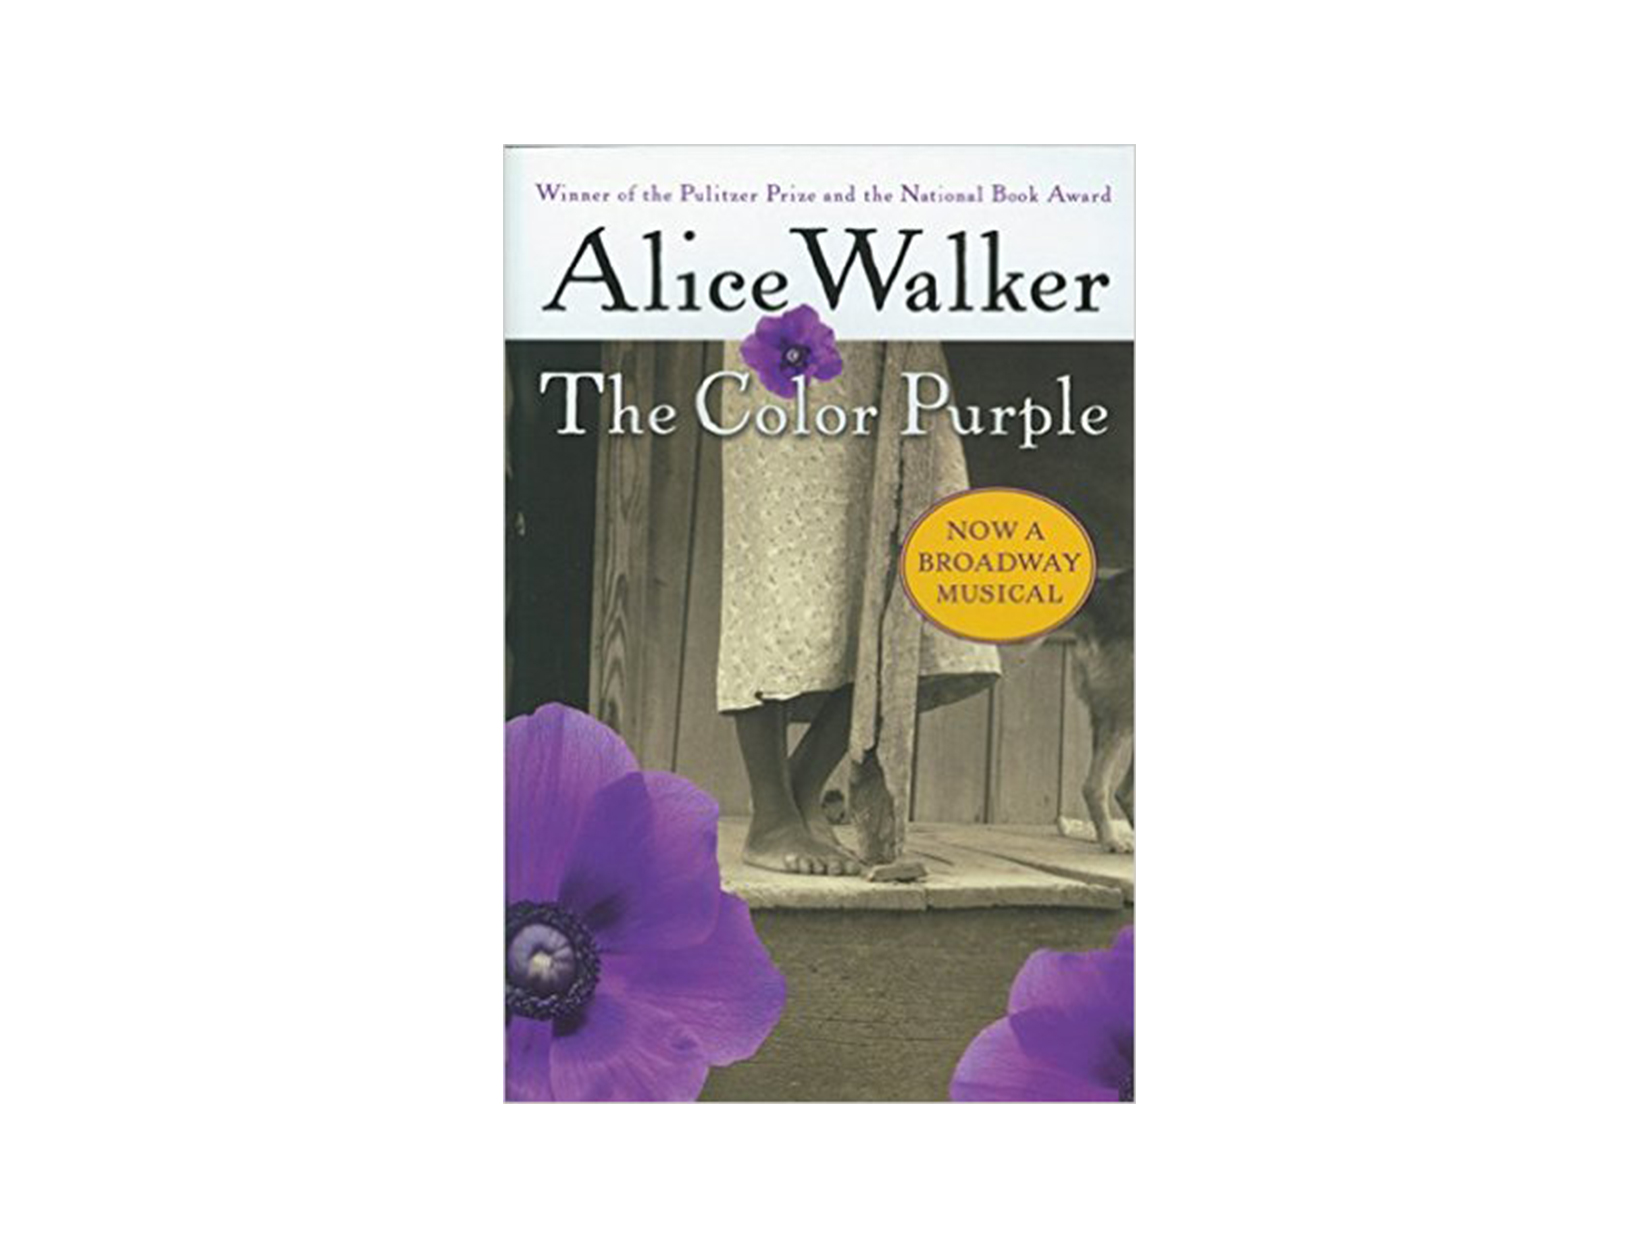 essay color purple book The color purple essays: over 180,000 the color purple essays, the color purple term papers, the color purple research paper, book reports 184 990 essays, term and research papers available for unlimited access.